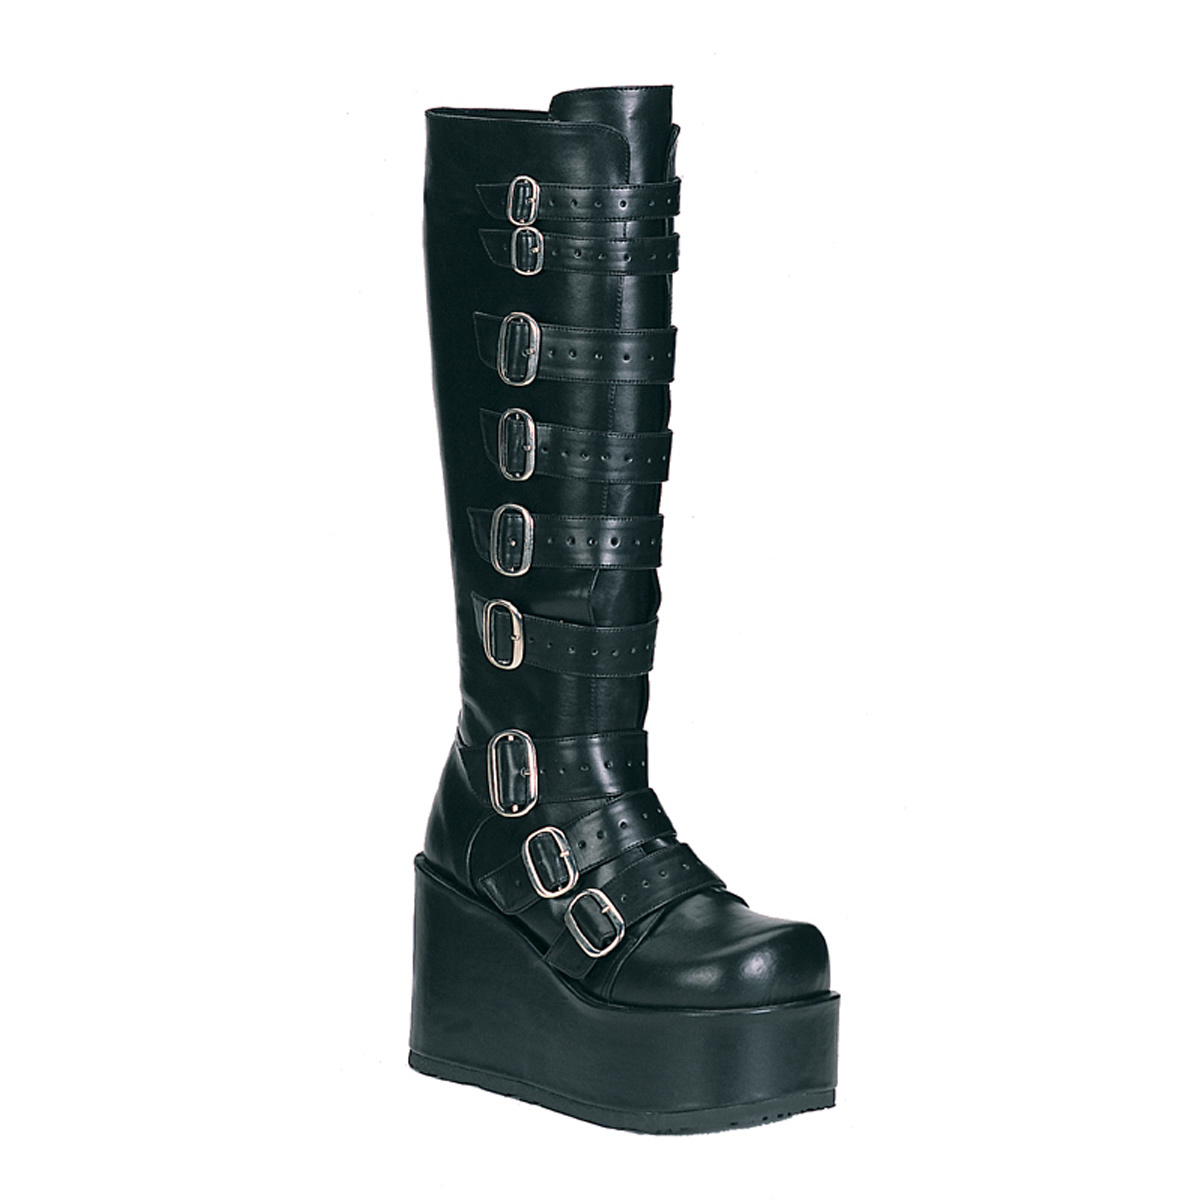 4 1 4 Inch Gothic Platform Knee Boots Buckle Detail Black Demonia by